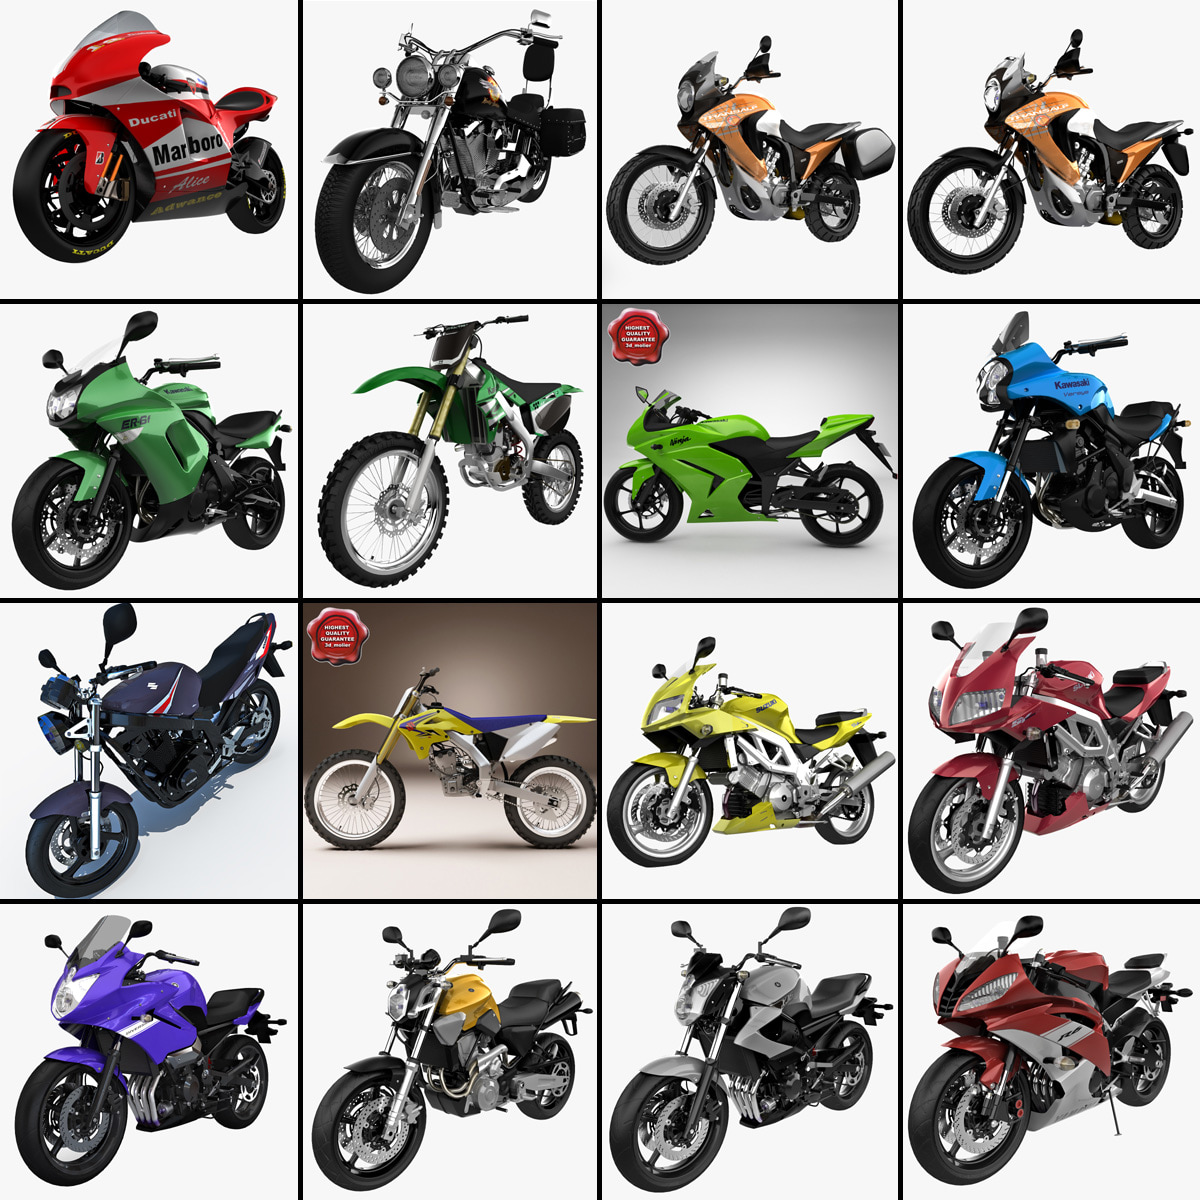 moto collection pic.jpg